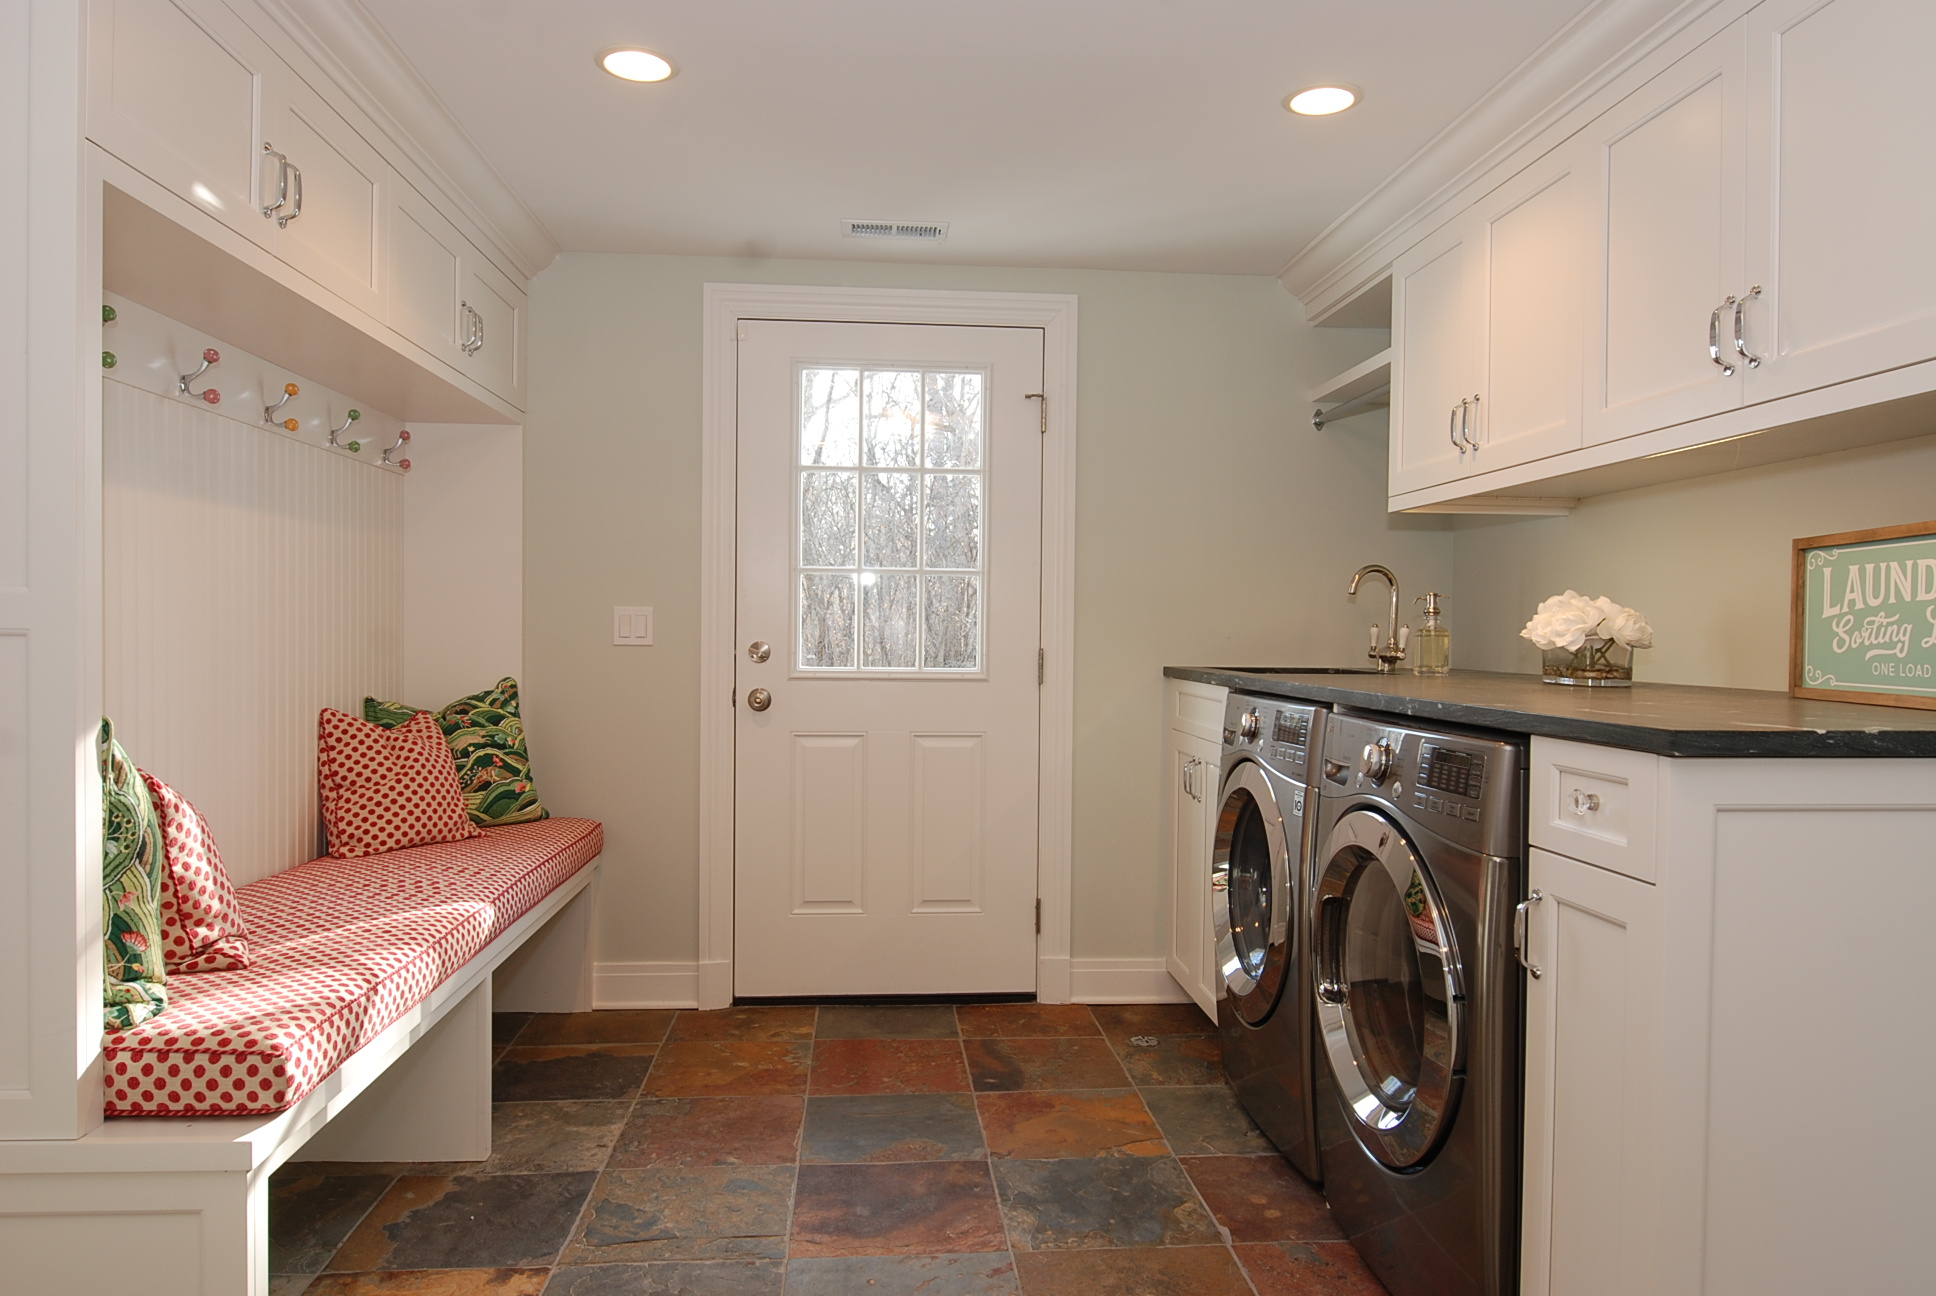 Laundry Room Trends For 2019